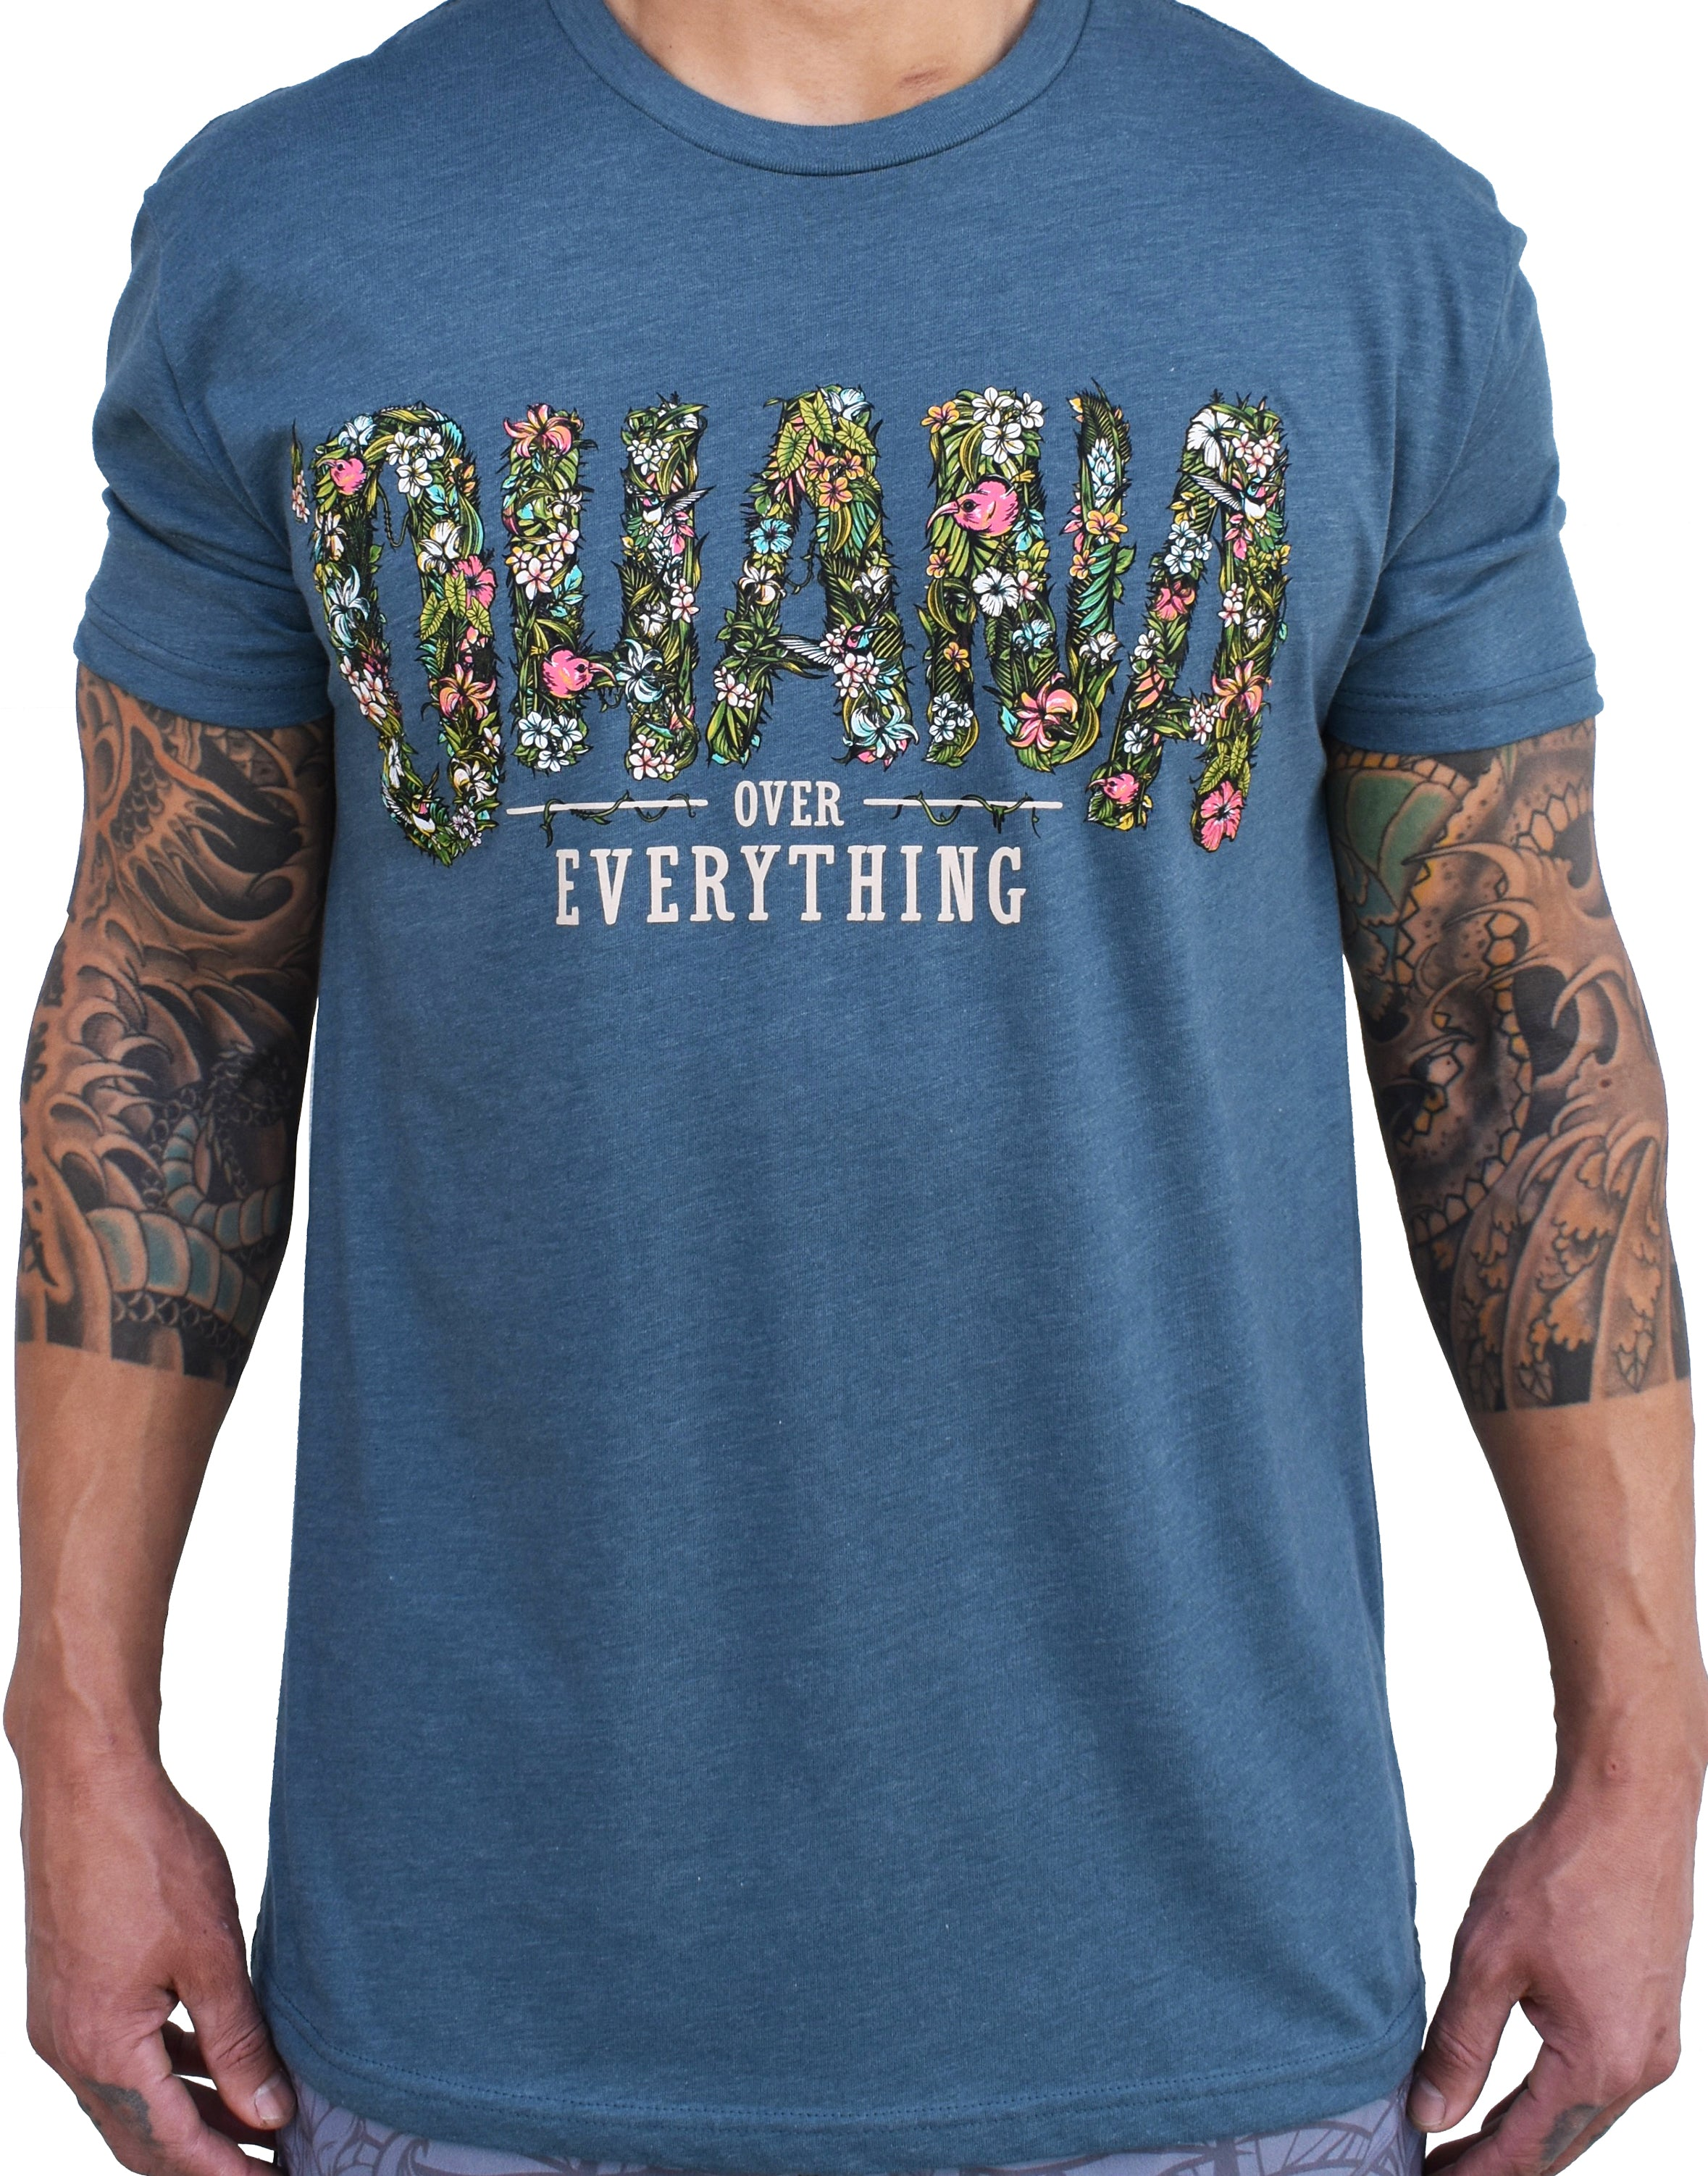 Men's 'Ohana Over Everything' Tee - Marine